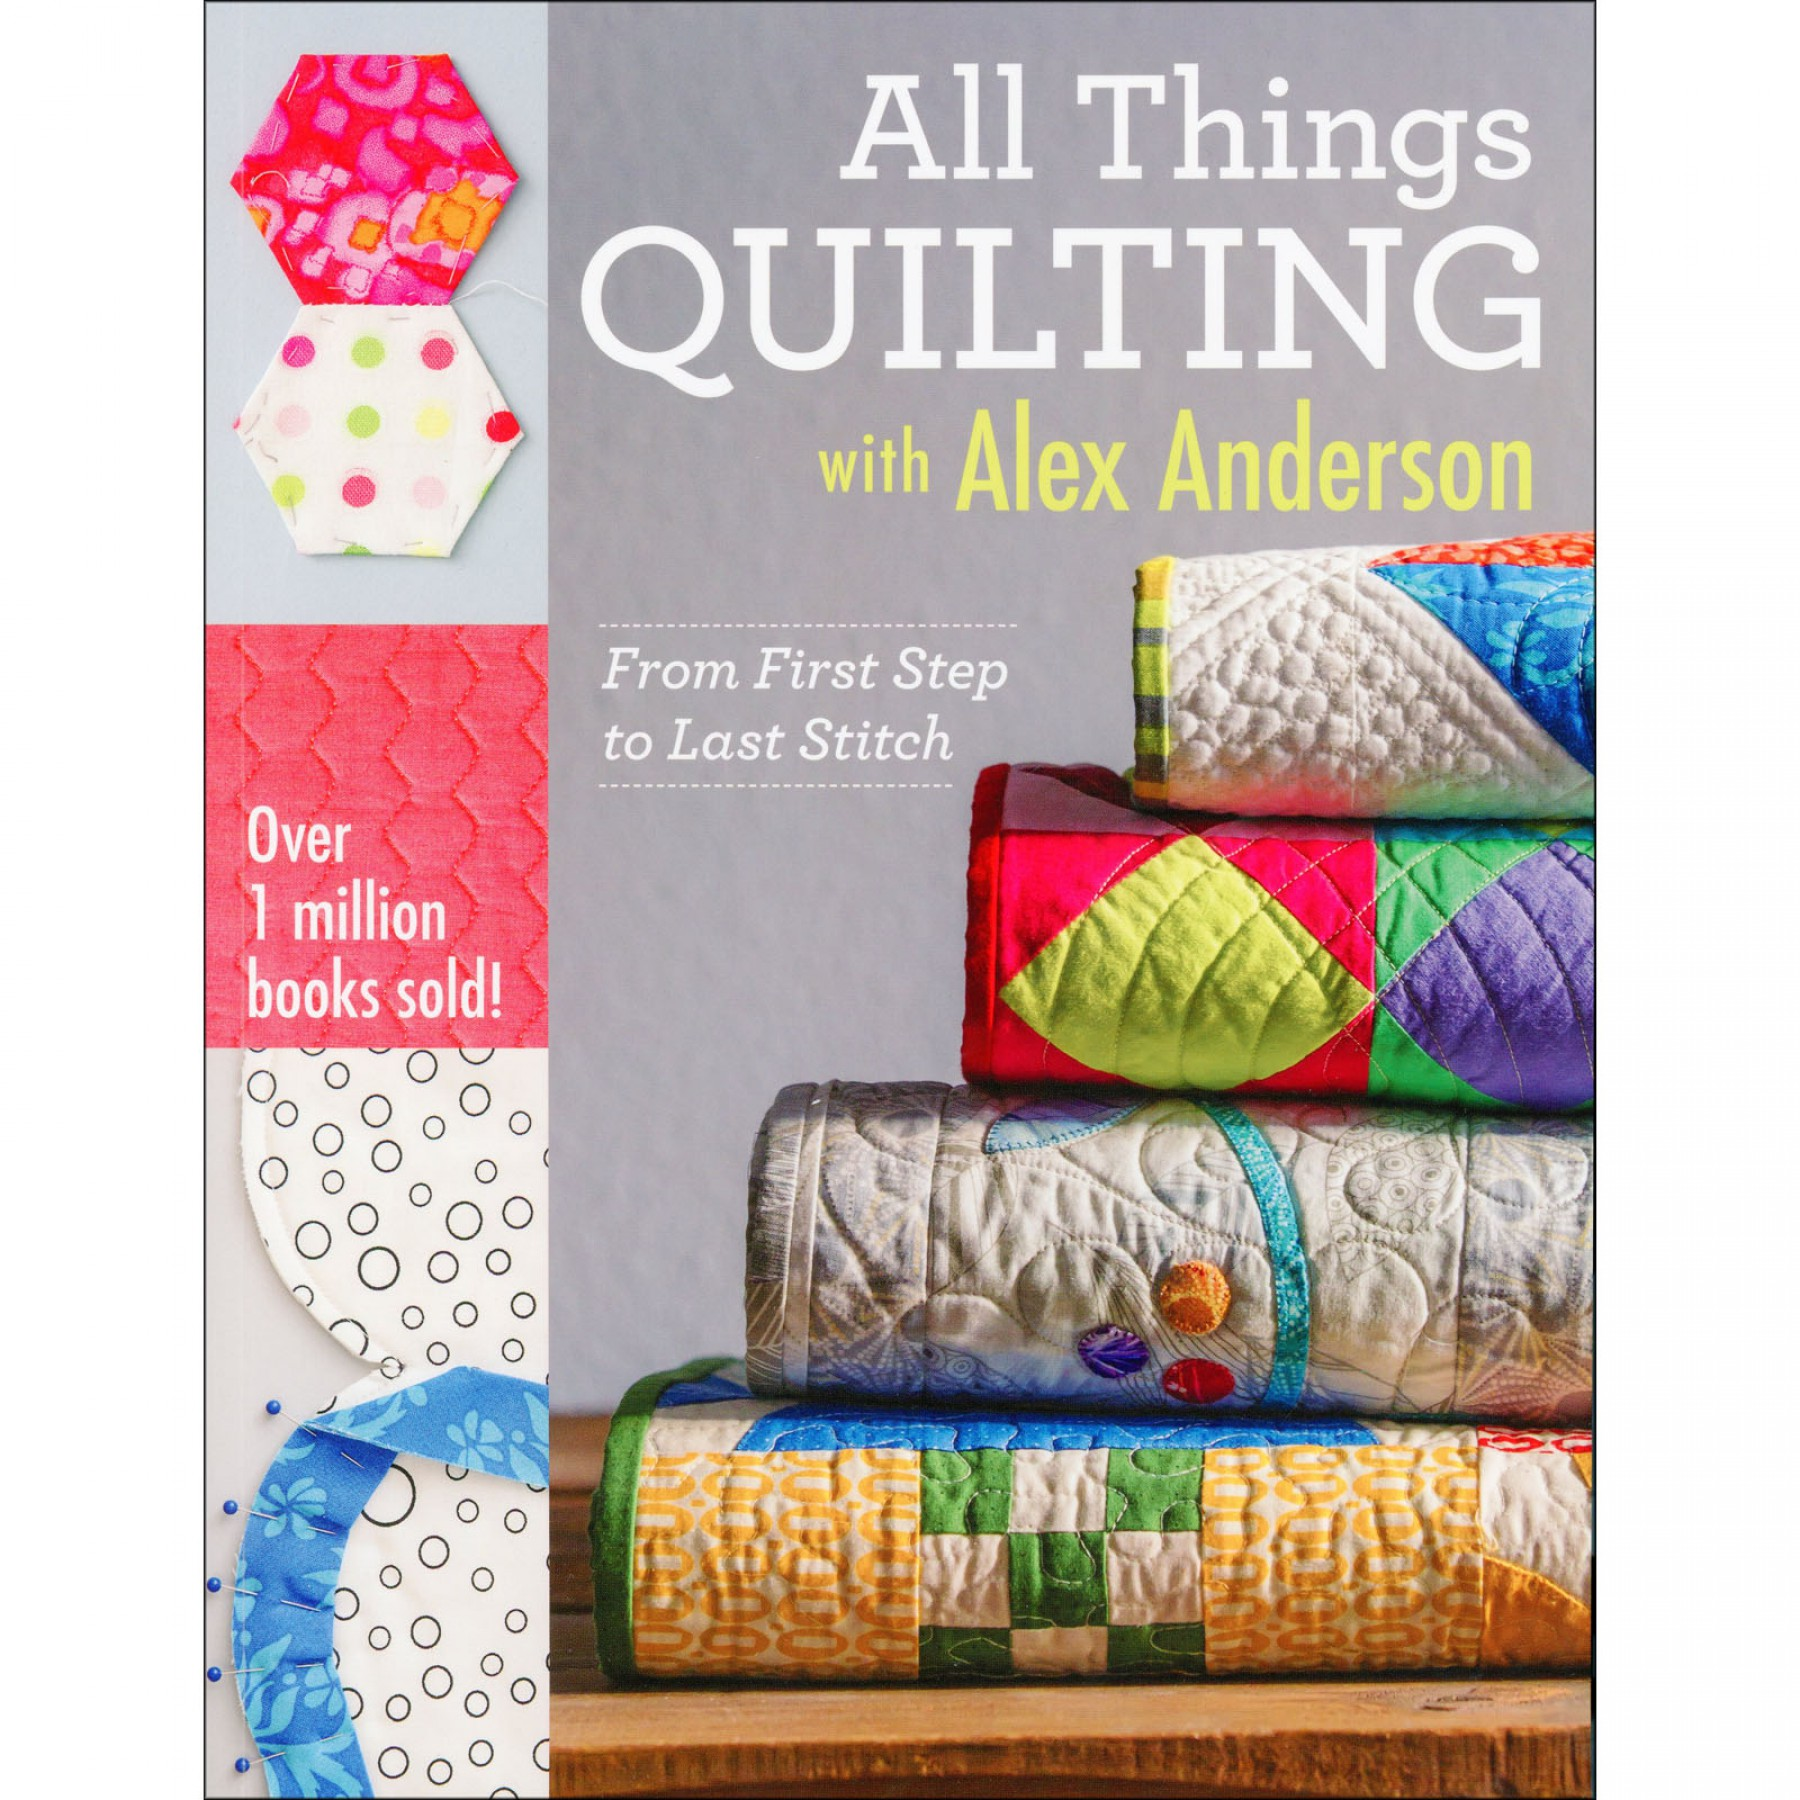 All Things Quilting with Alex Anderson | EE Schenck Co